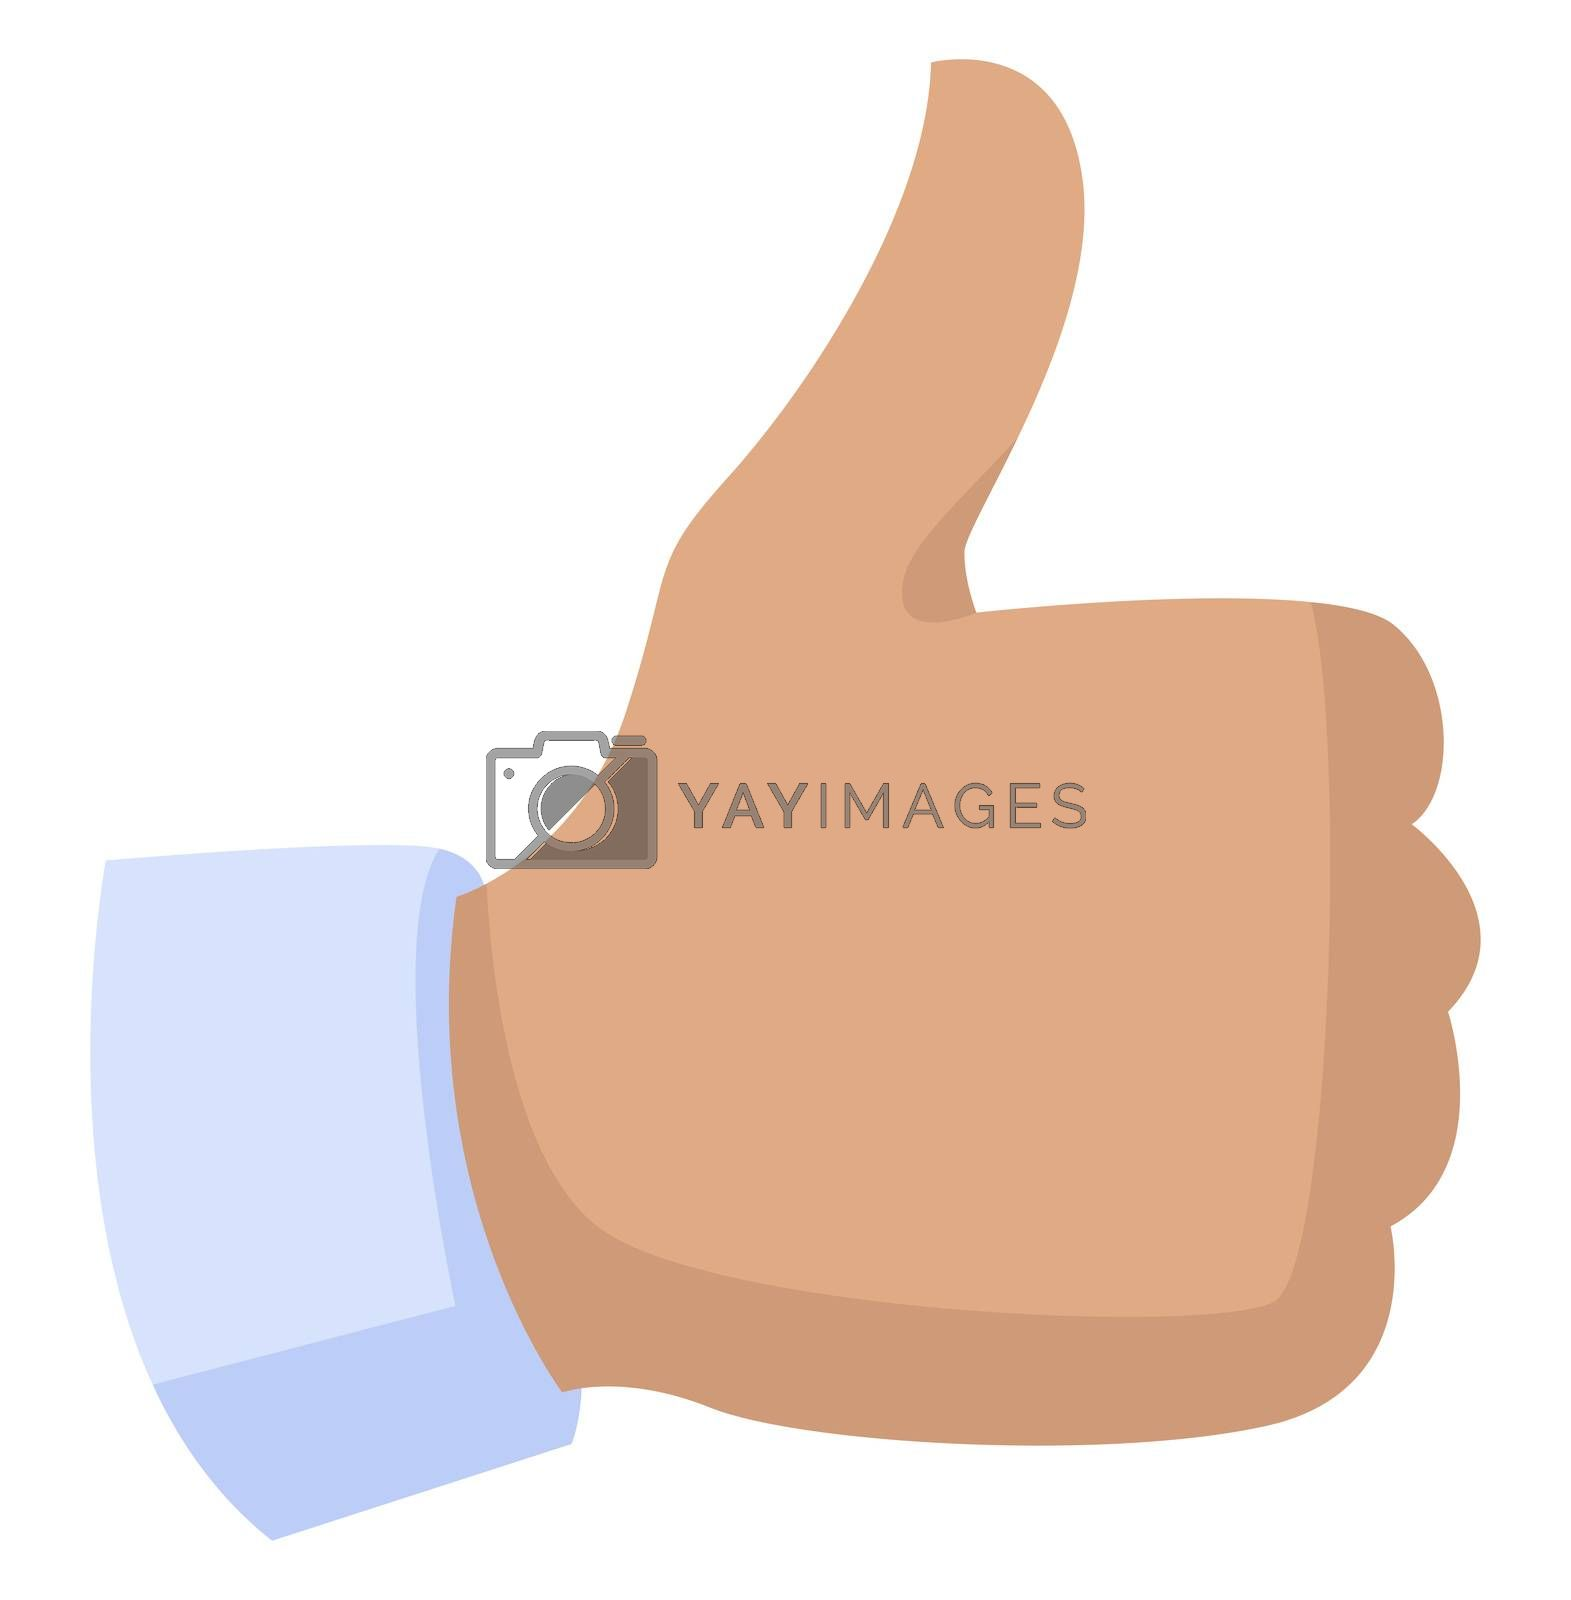 Royalty free image of Thumbs up, illustration, vector on white background by Morphart